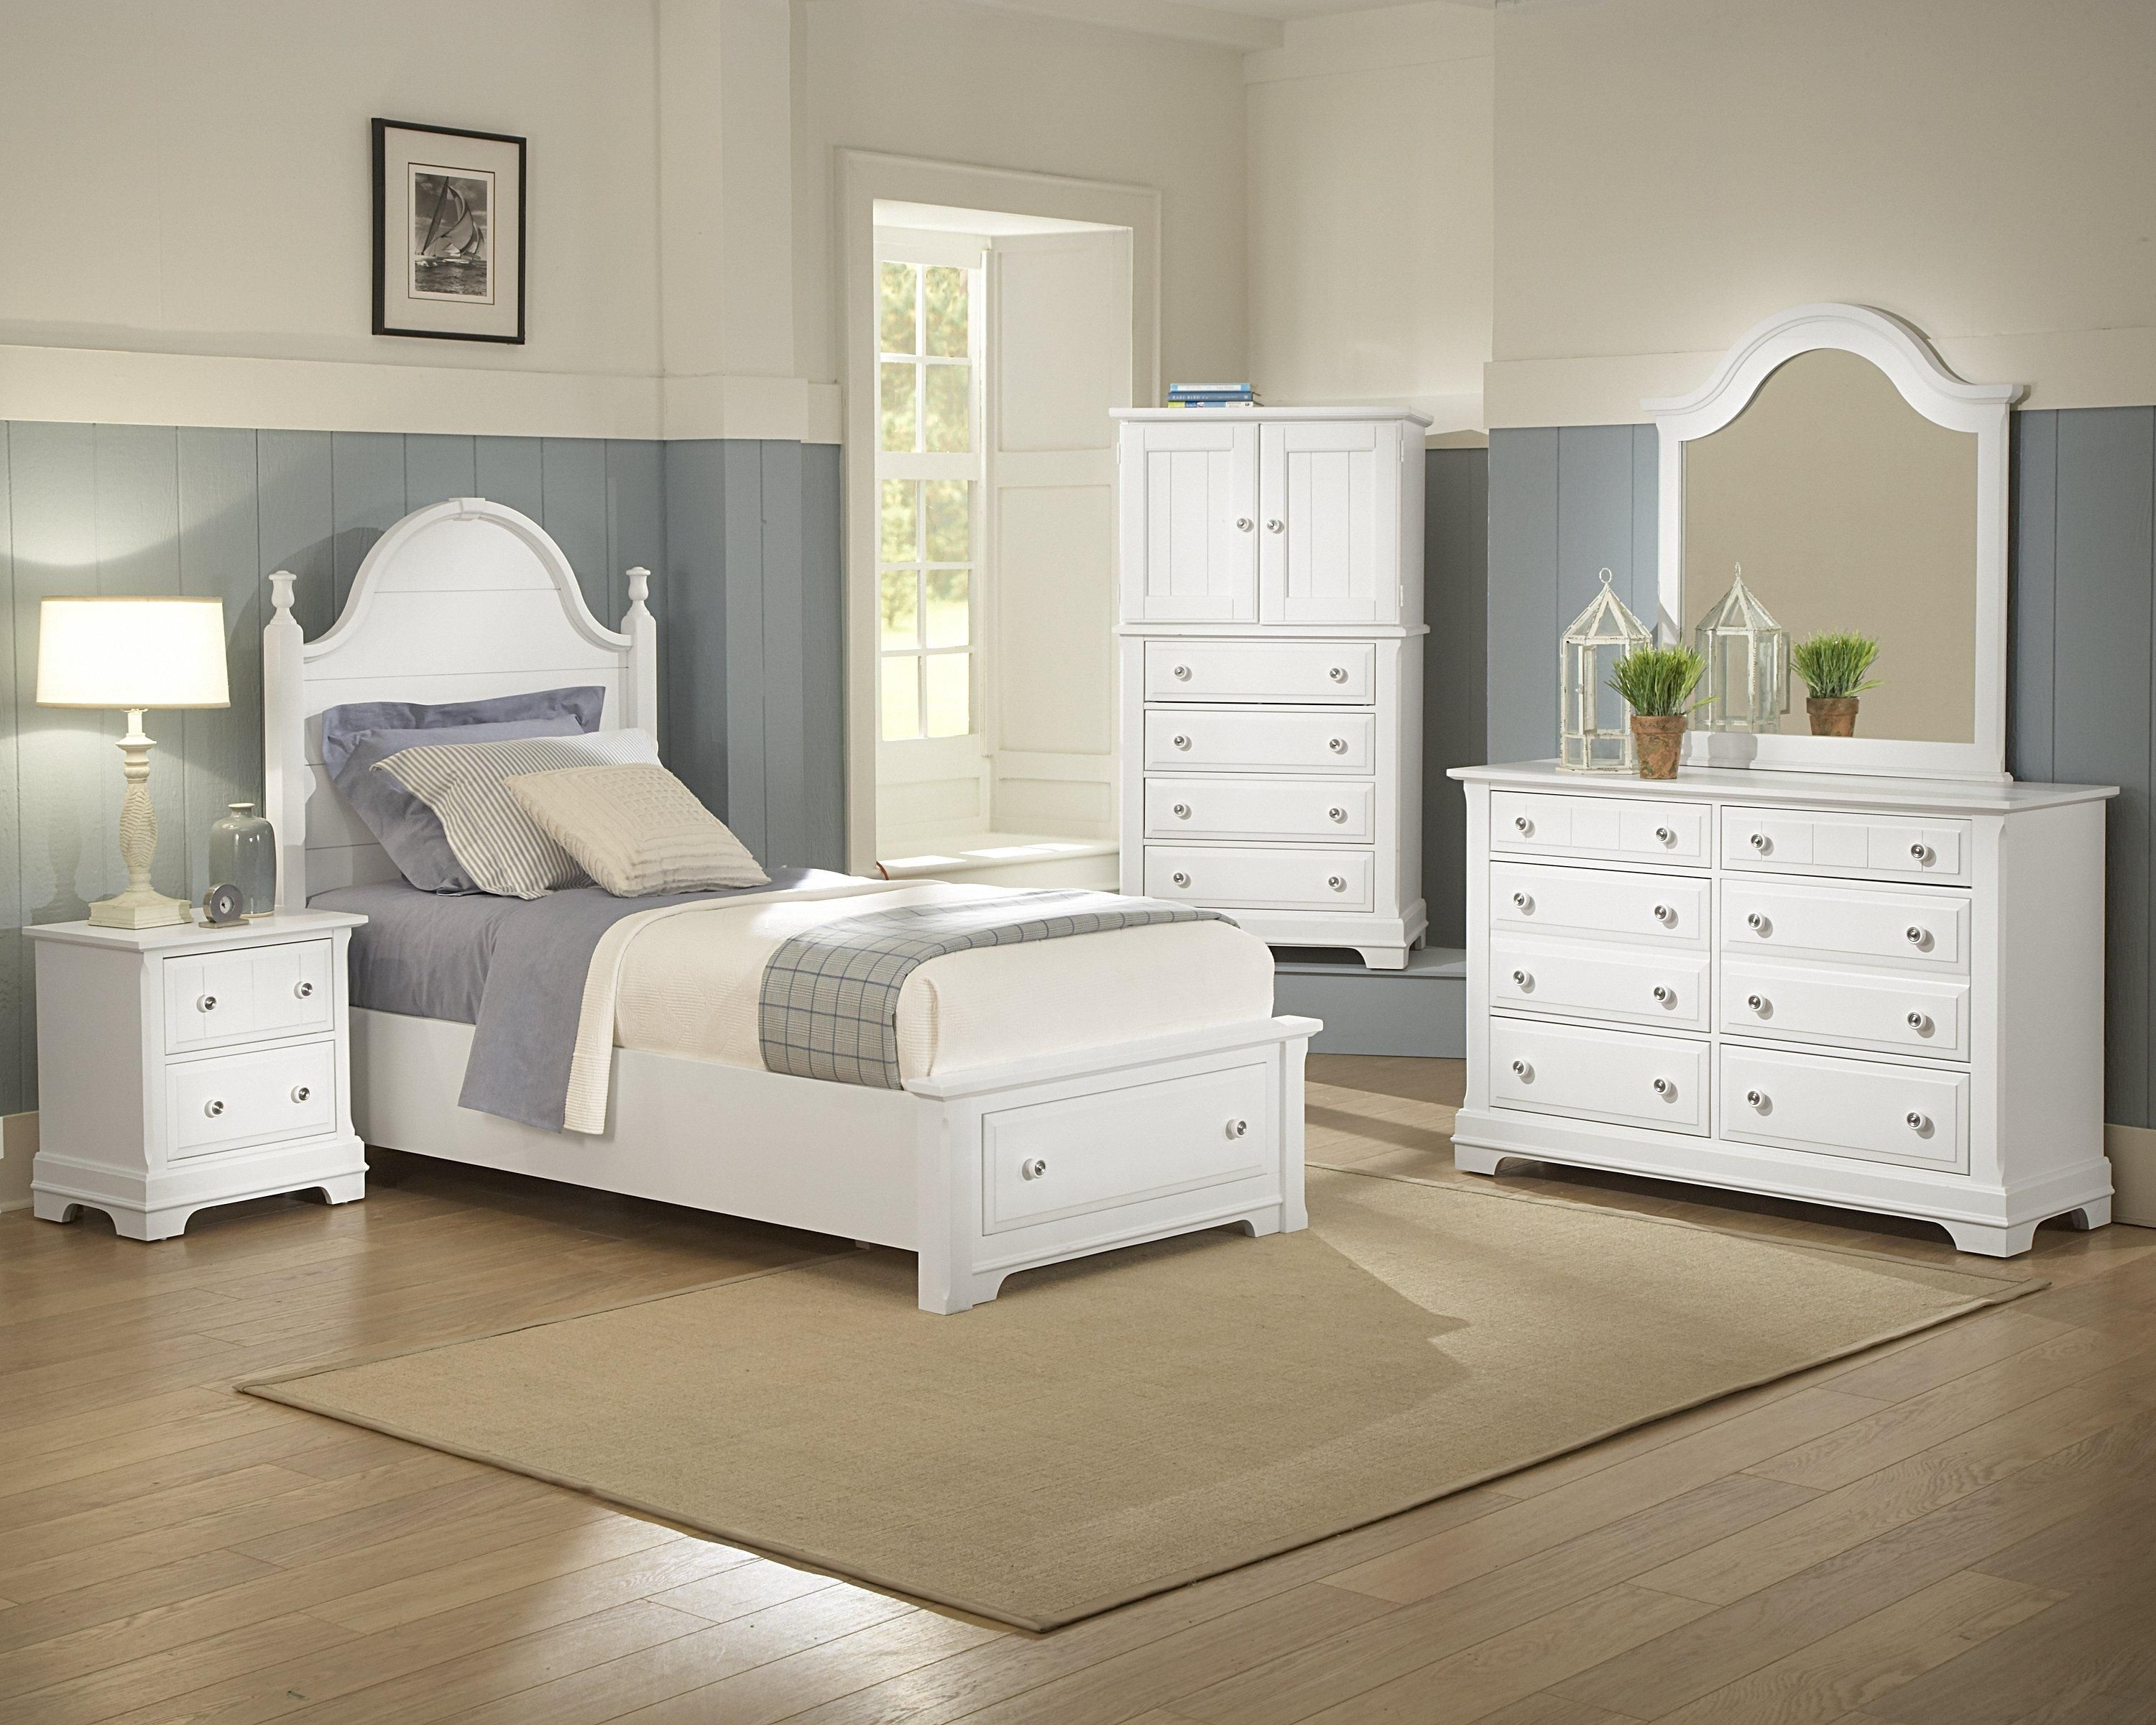 Vaughn Bassett Furniture: Cottage Collection Featuring Panel Storage Bed,  Night Stand, Vanity Chest